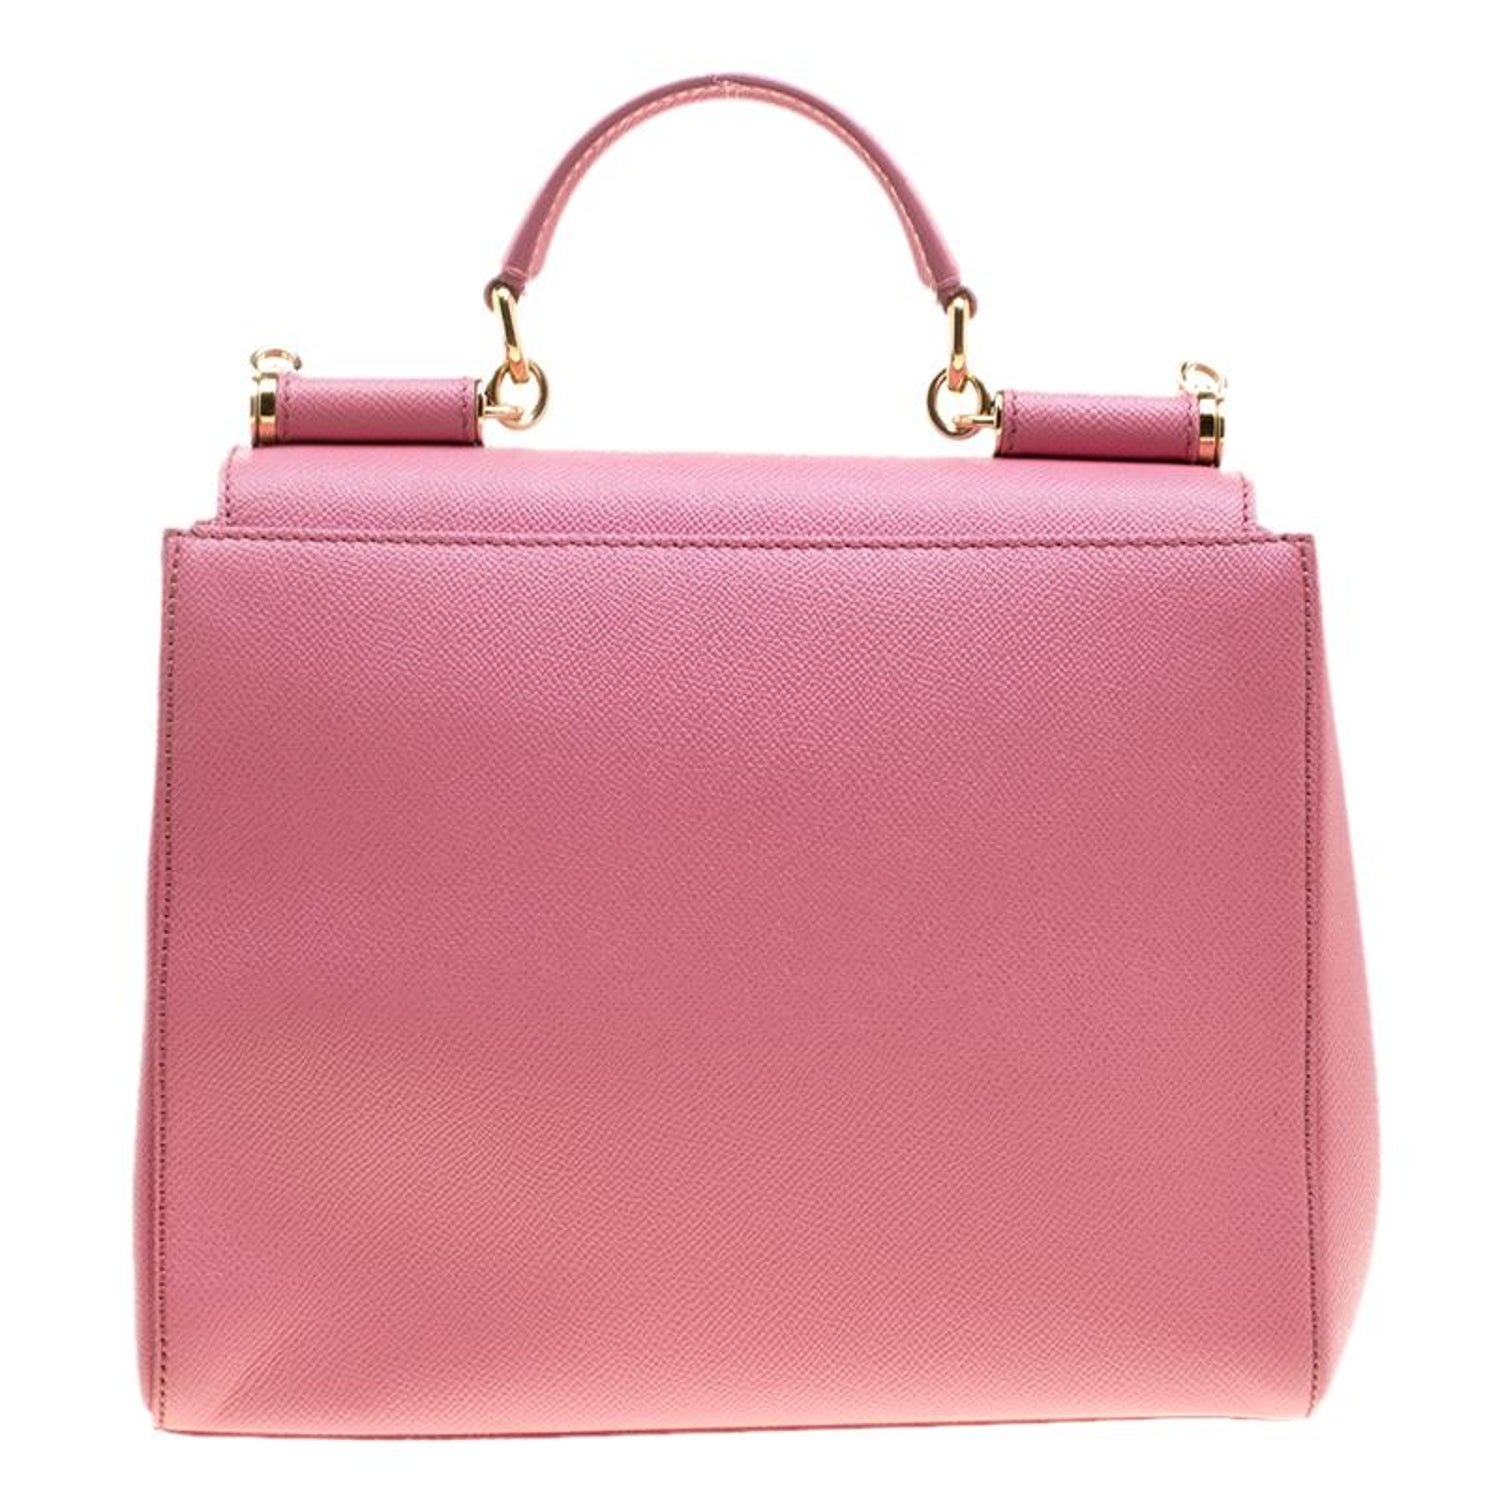 e437e5f7c Dolce and Gabbana Pink Leather Medium Miss Sicily Top Handle Bag For Sale  at 1stdibs